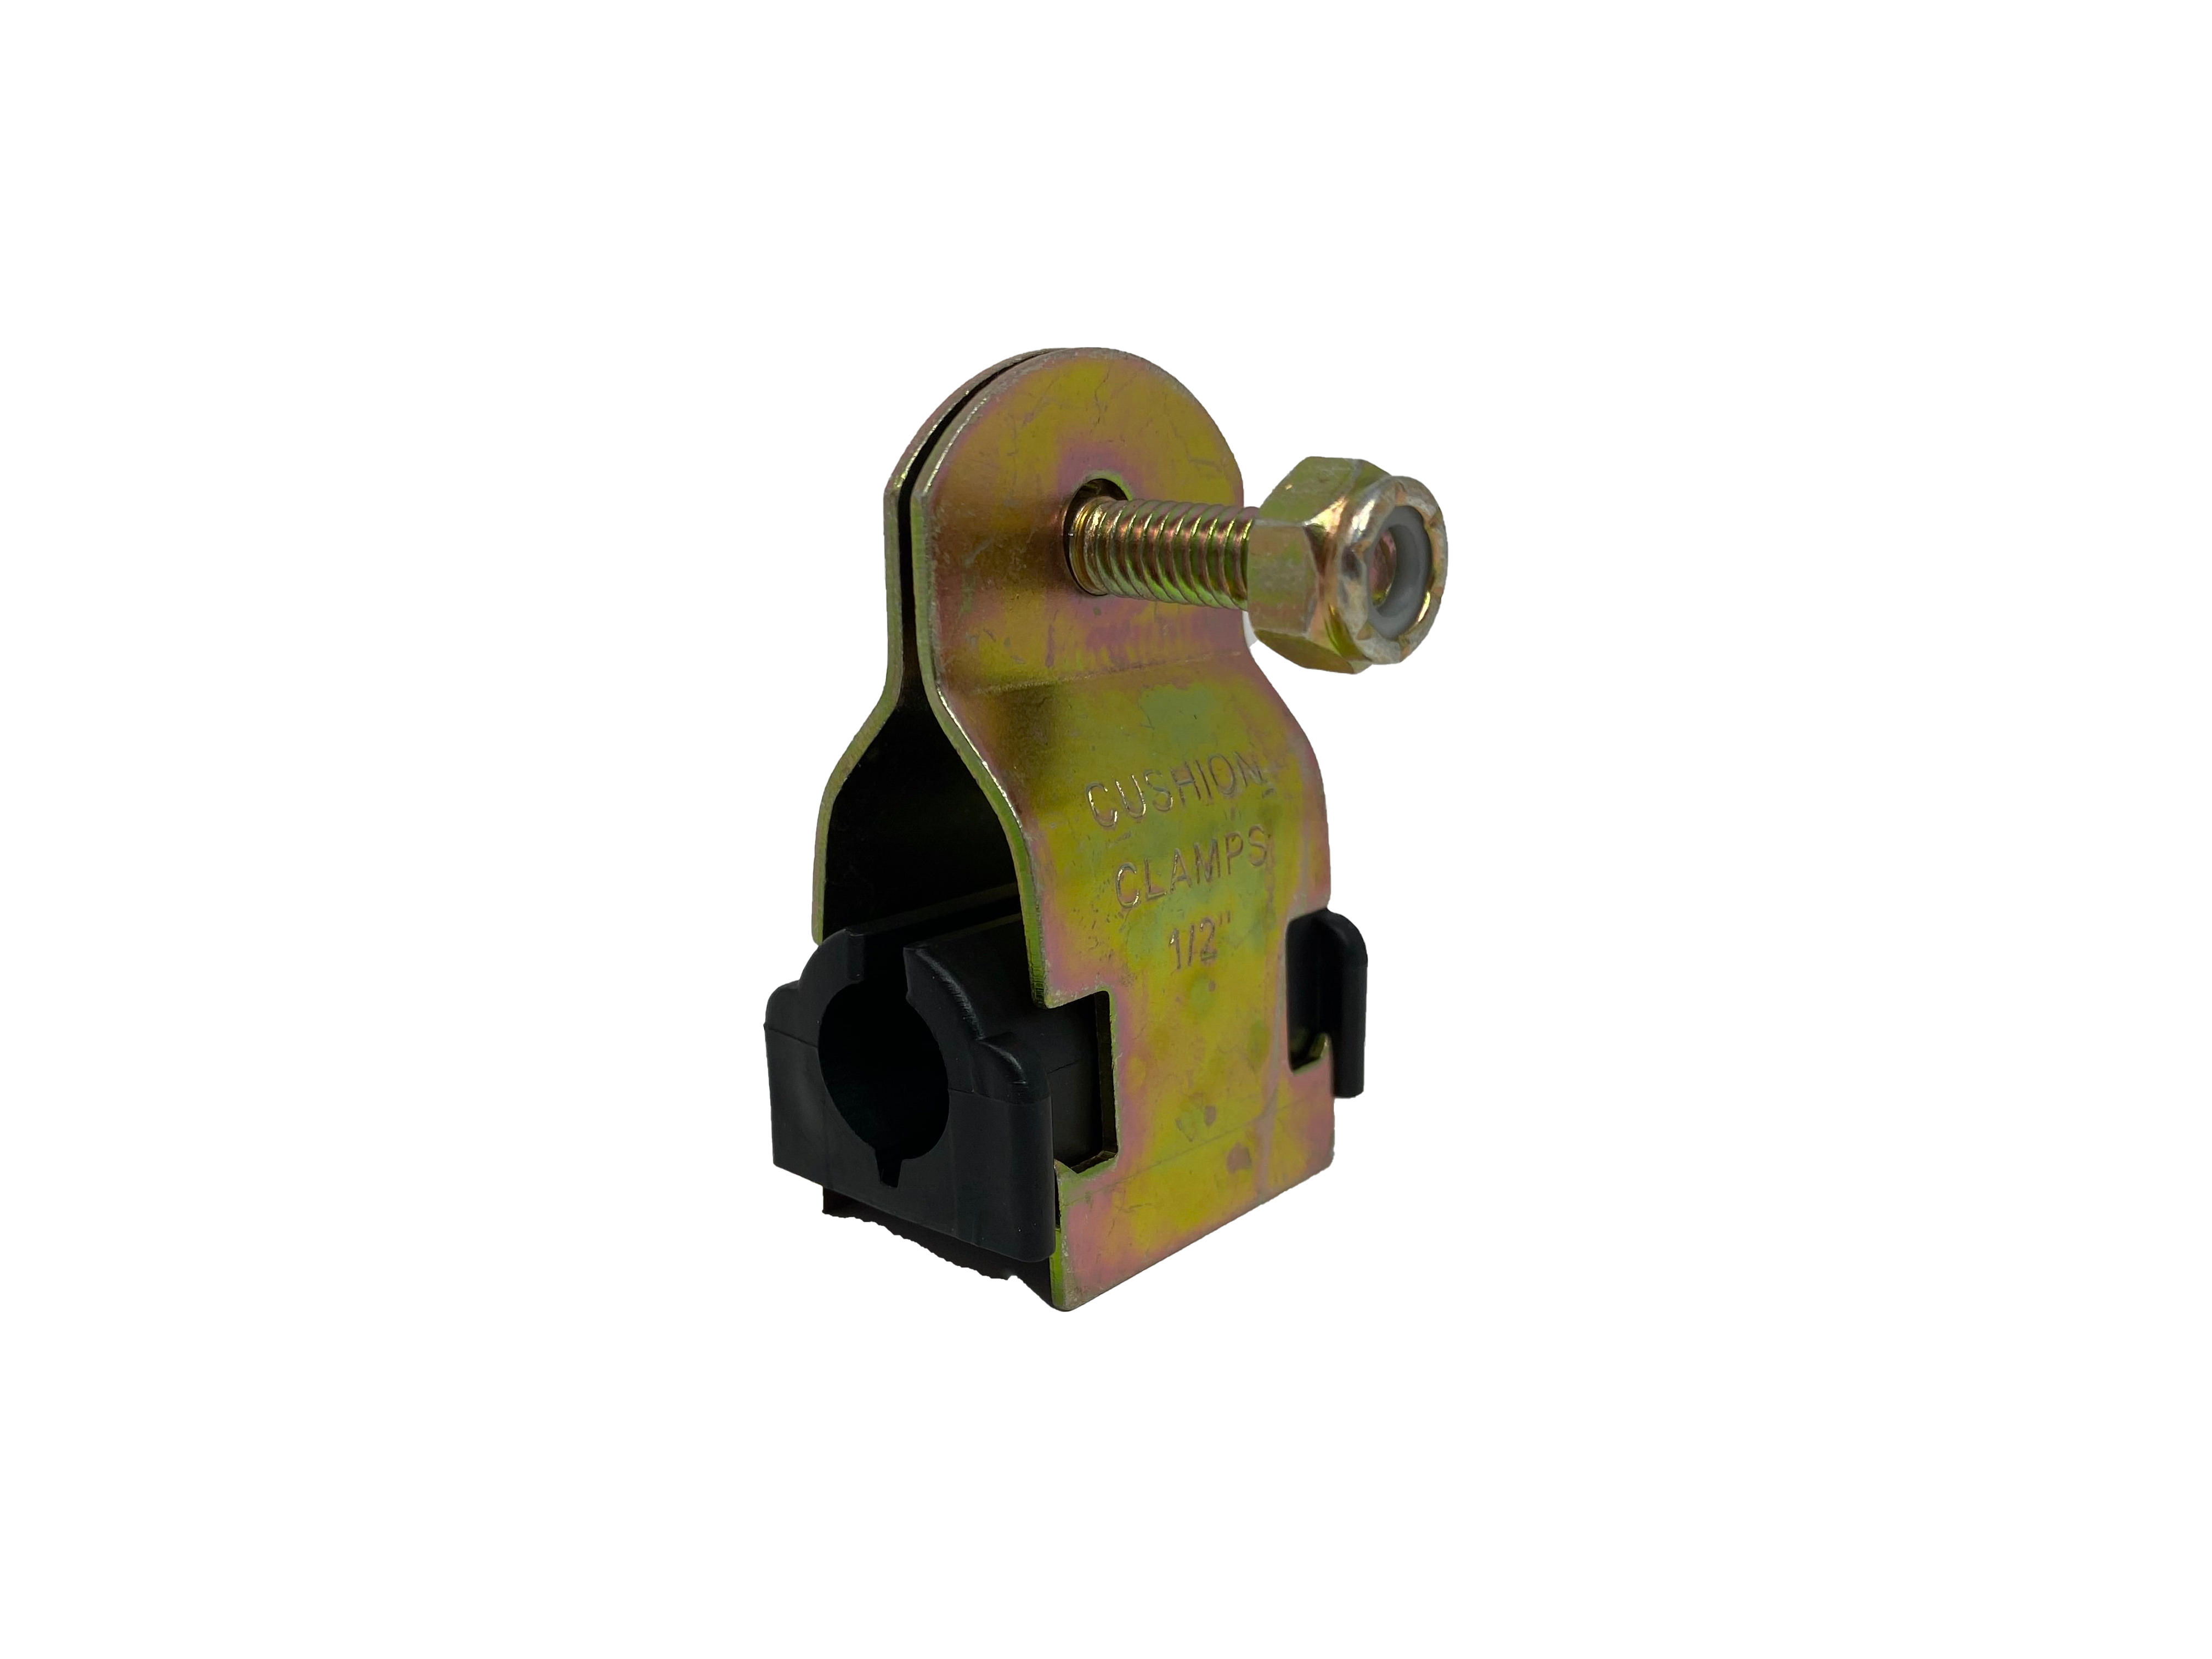 Cushion Clamps 1/2